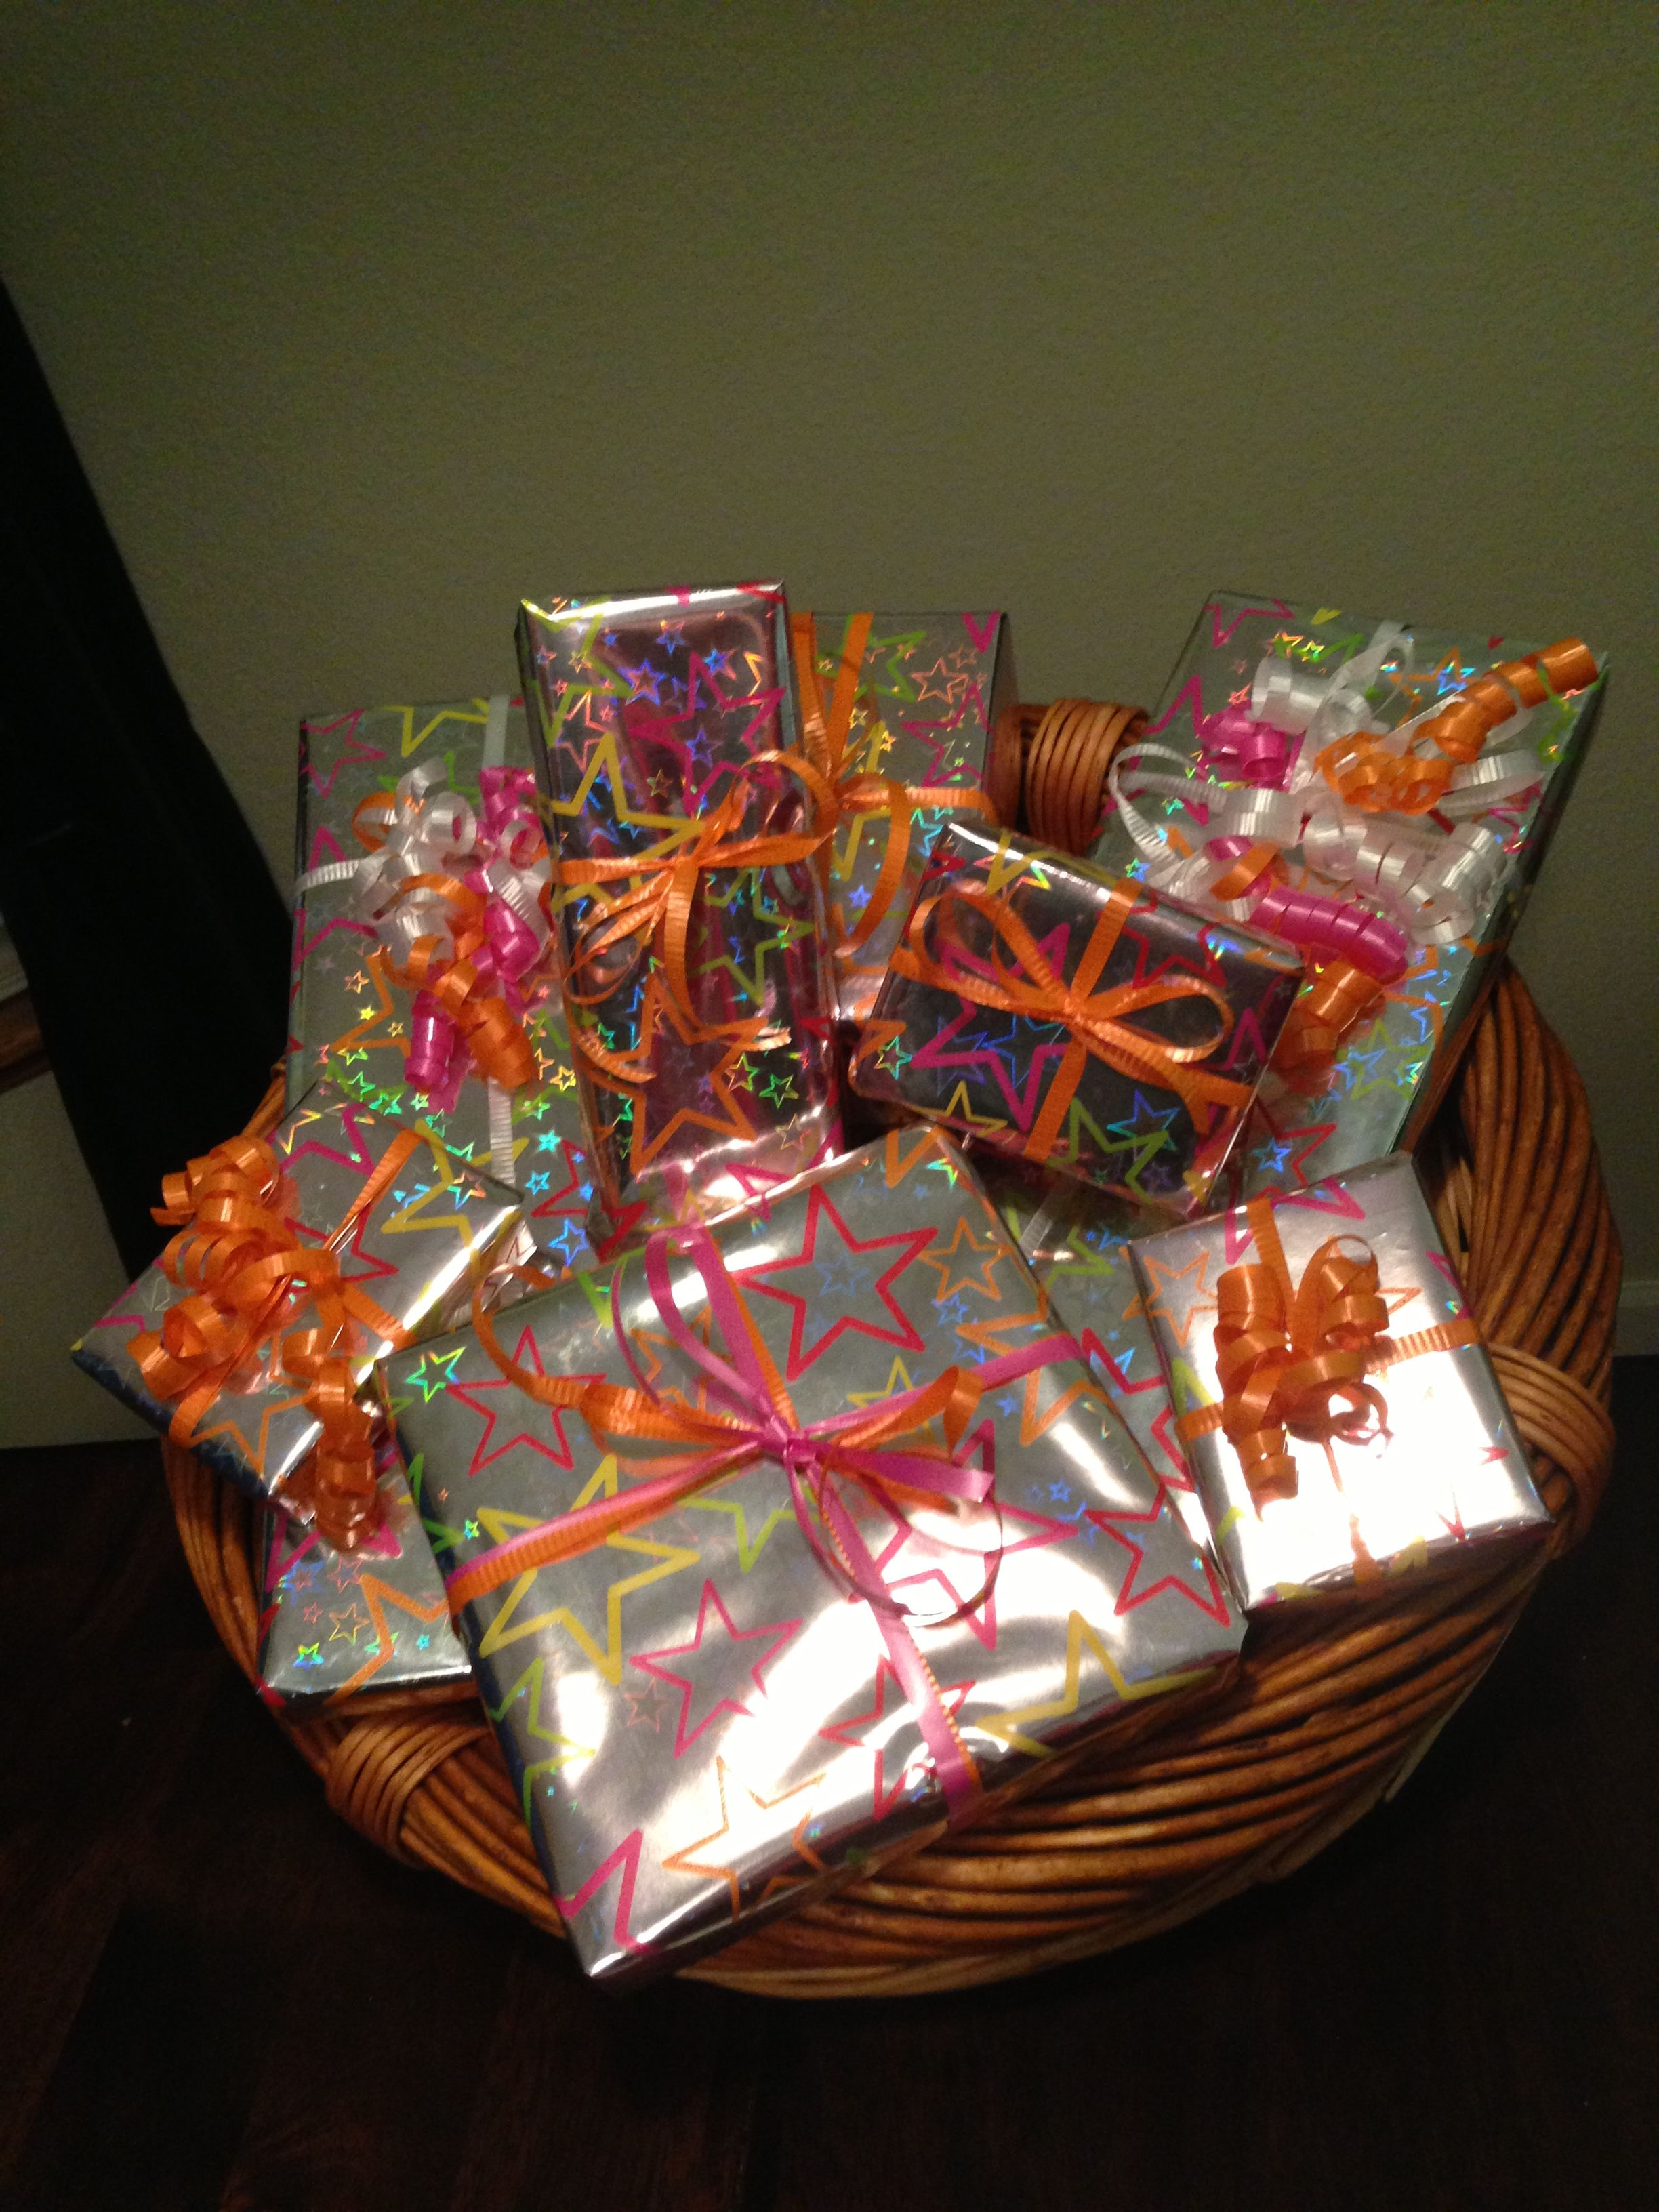 Pin by Alio on Gift wrapping ideas | Gift wrapping, Sugar